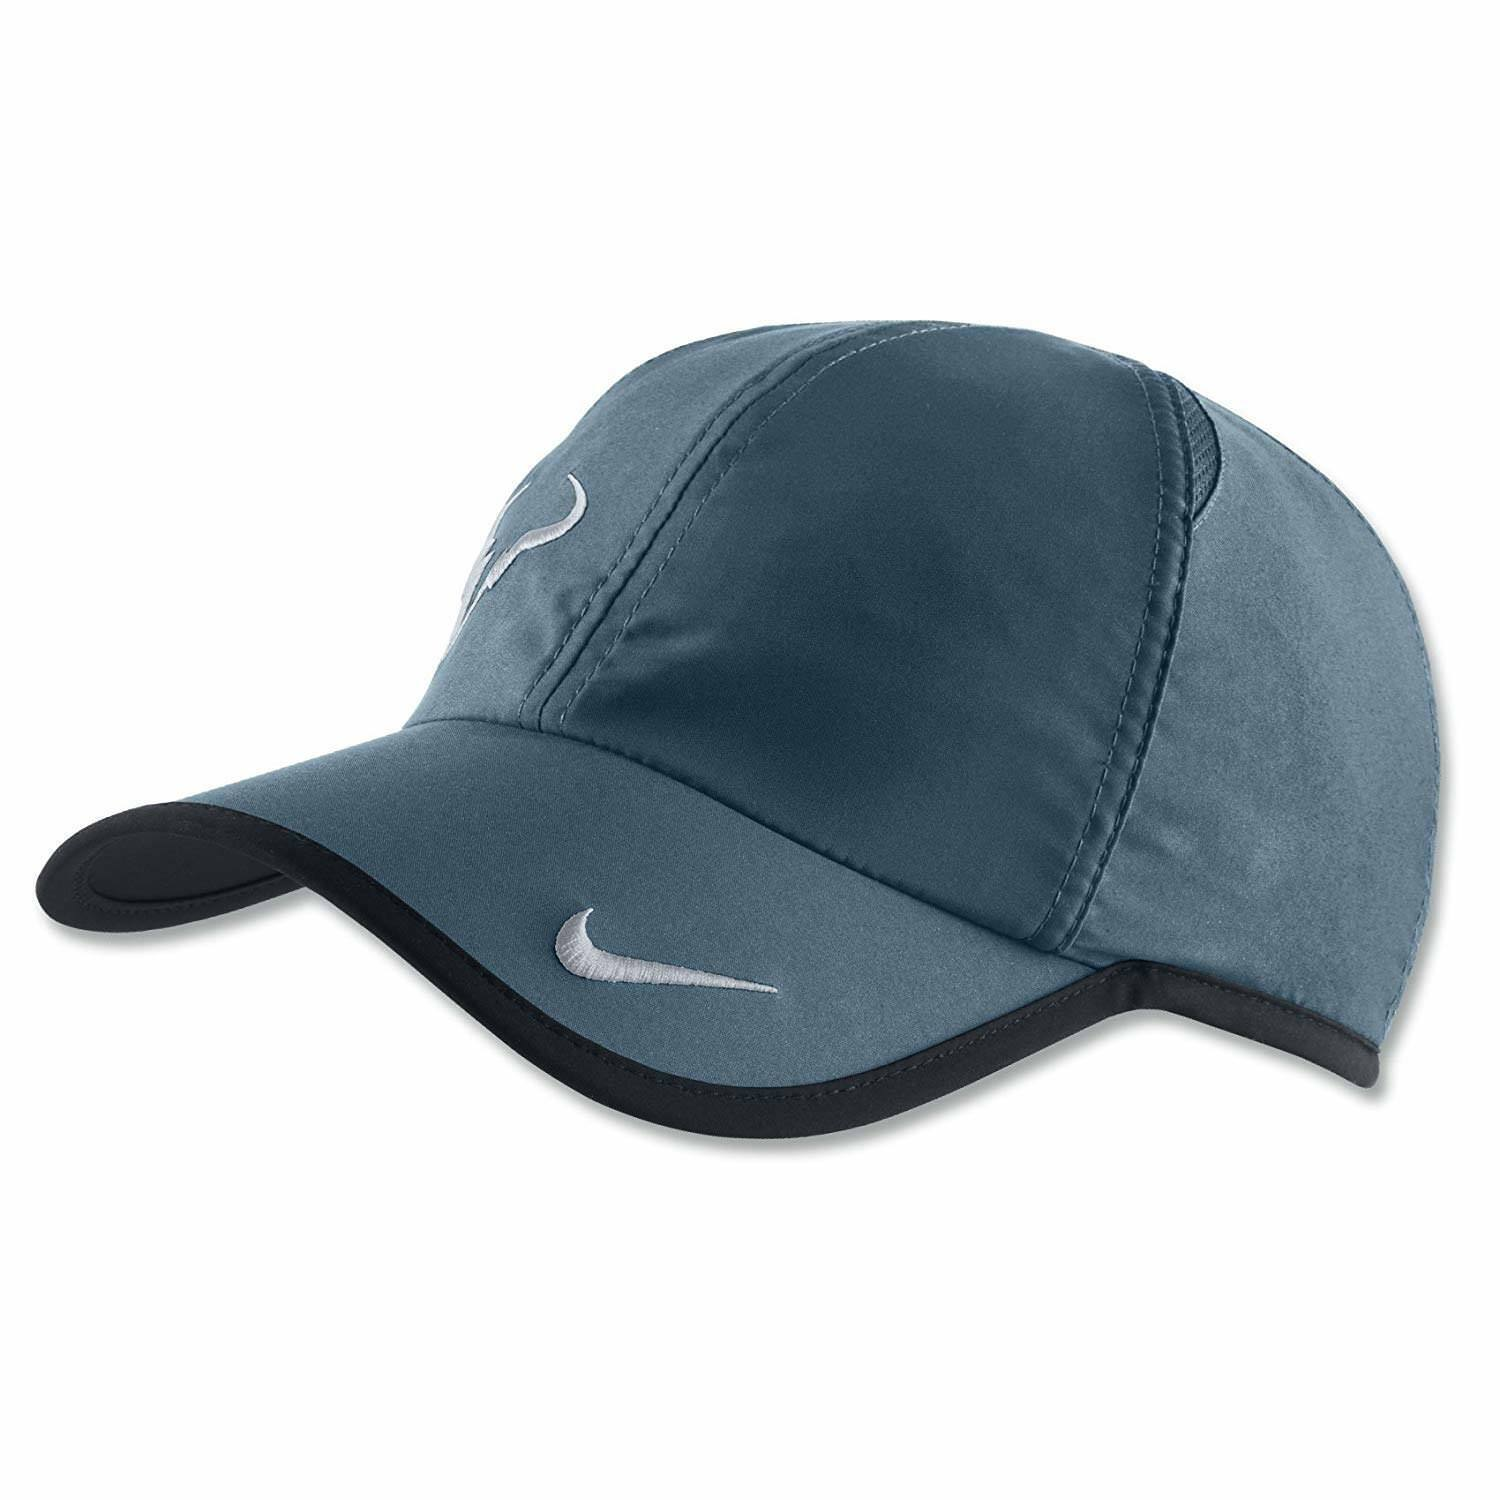 NEW! Midnight [ADJUSTABLE] NIKE Nada Bull DRI-FIT FEATHER LIGHT Tennis Hat